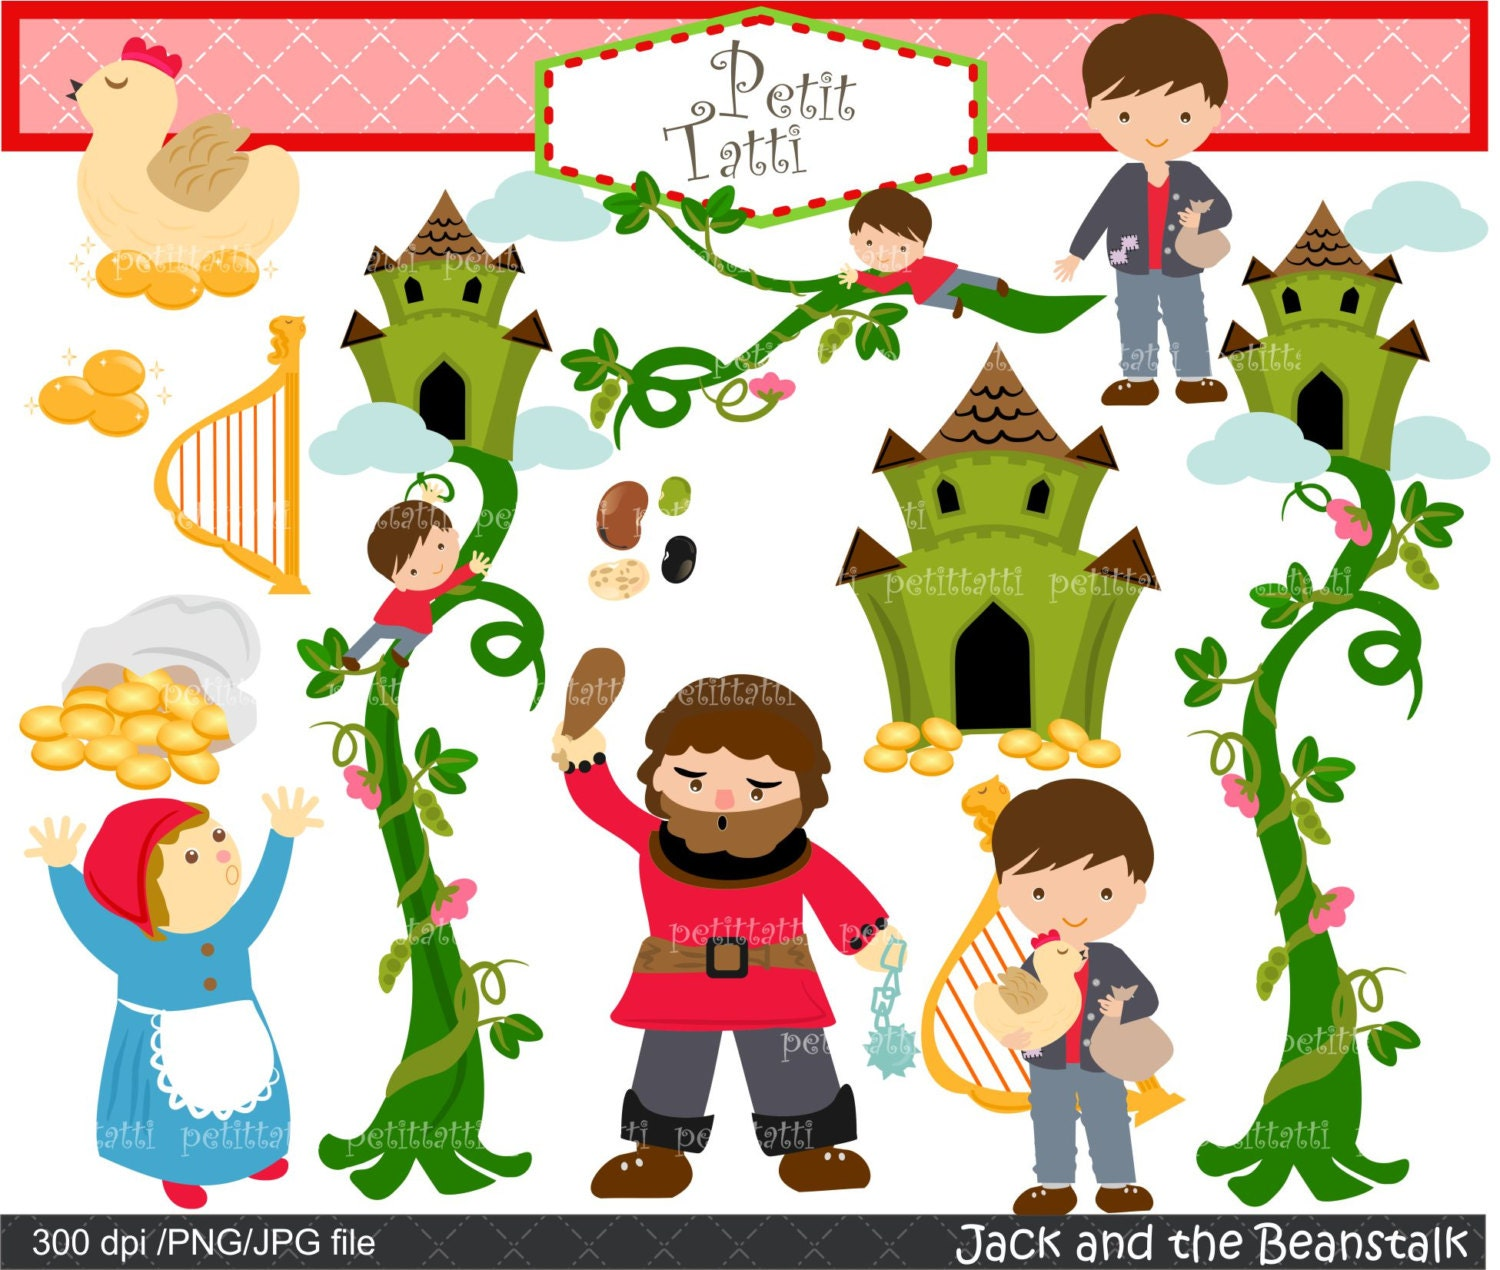 on sale jack and beanstalk digital clipart children story rh etsy com jack and the beanstalk characters clipart jack and the beanstalk castle clipart